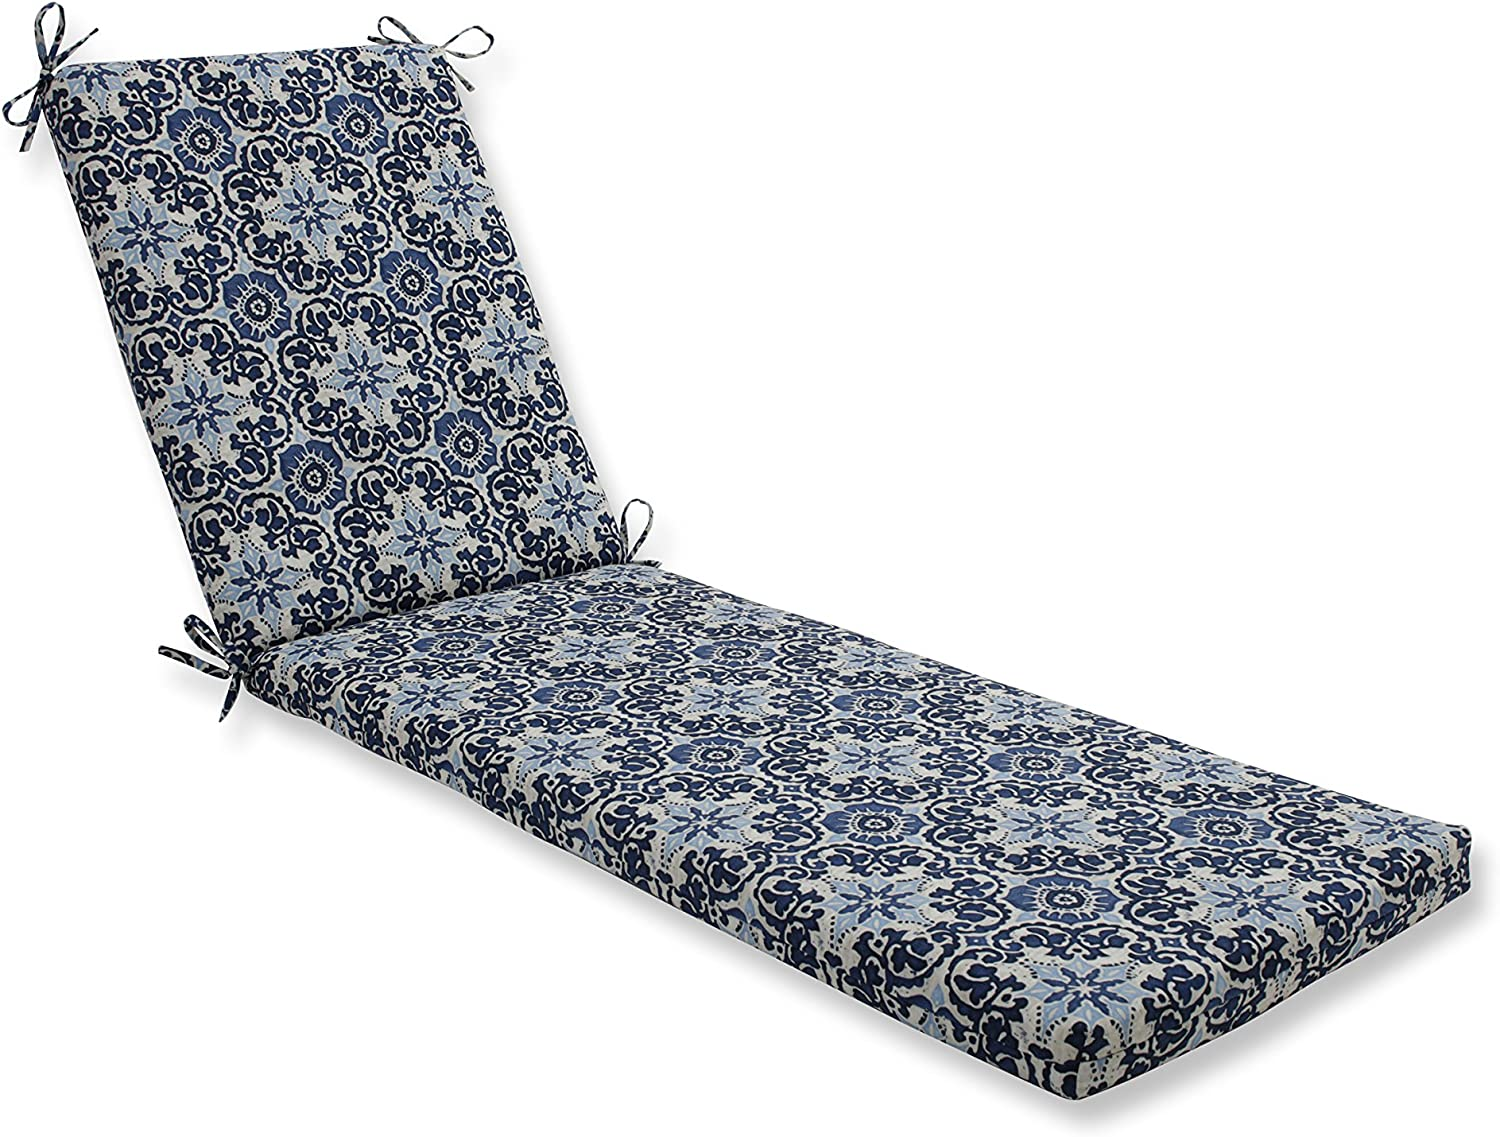 Pillow Perfect Outdoor/Indoor Woodblock Prism Blue Chaise Lounge Cushion 80x23x3